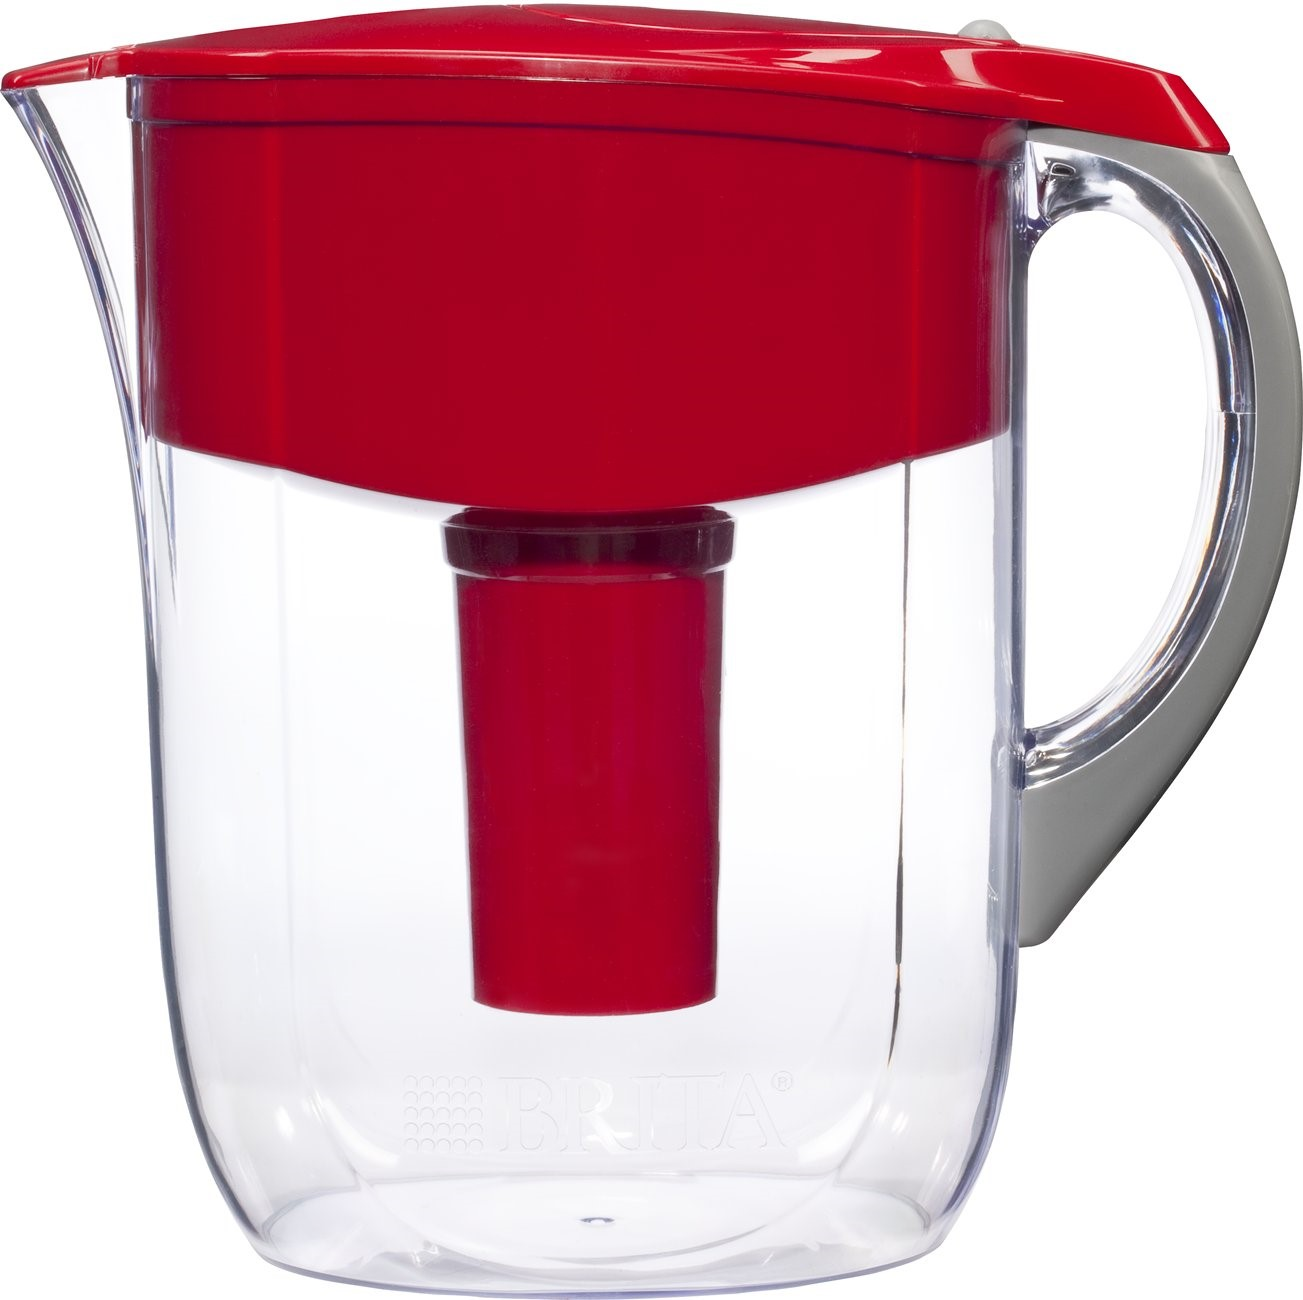 Attractive Brita Grand Water Filter Pitcher 10 Cups